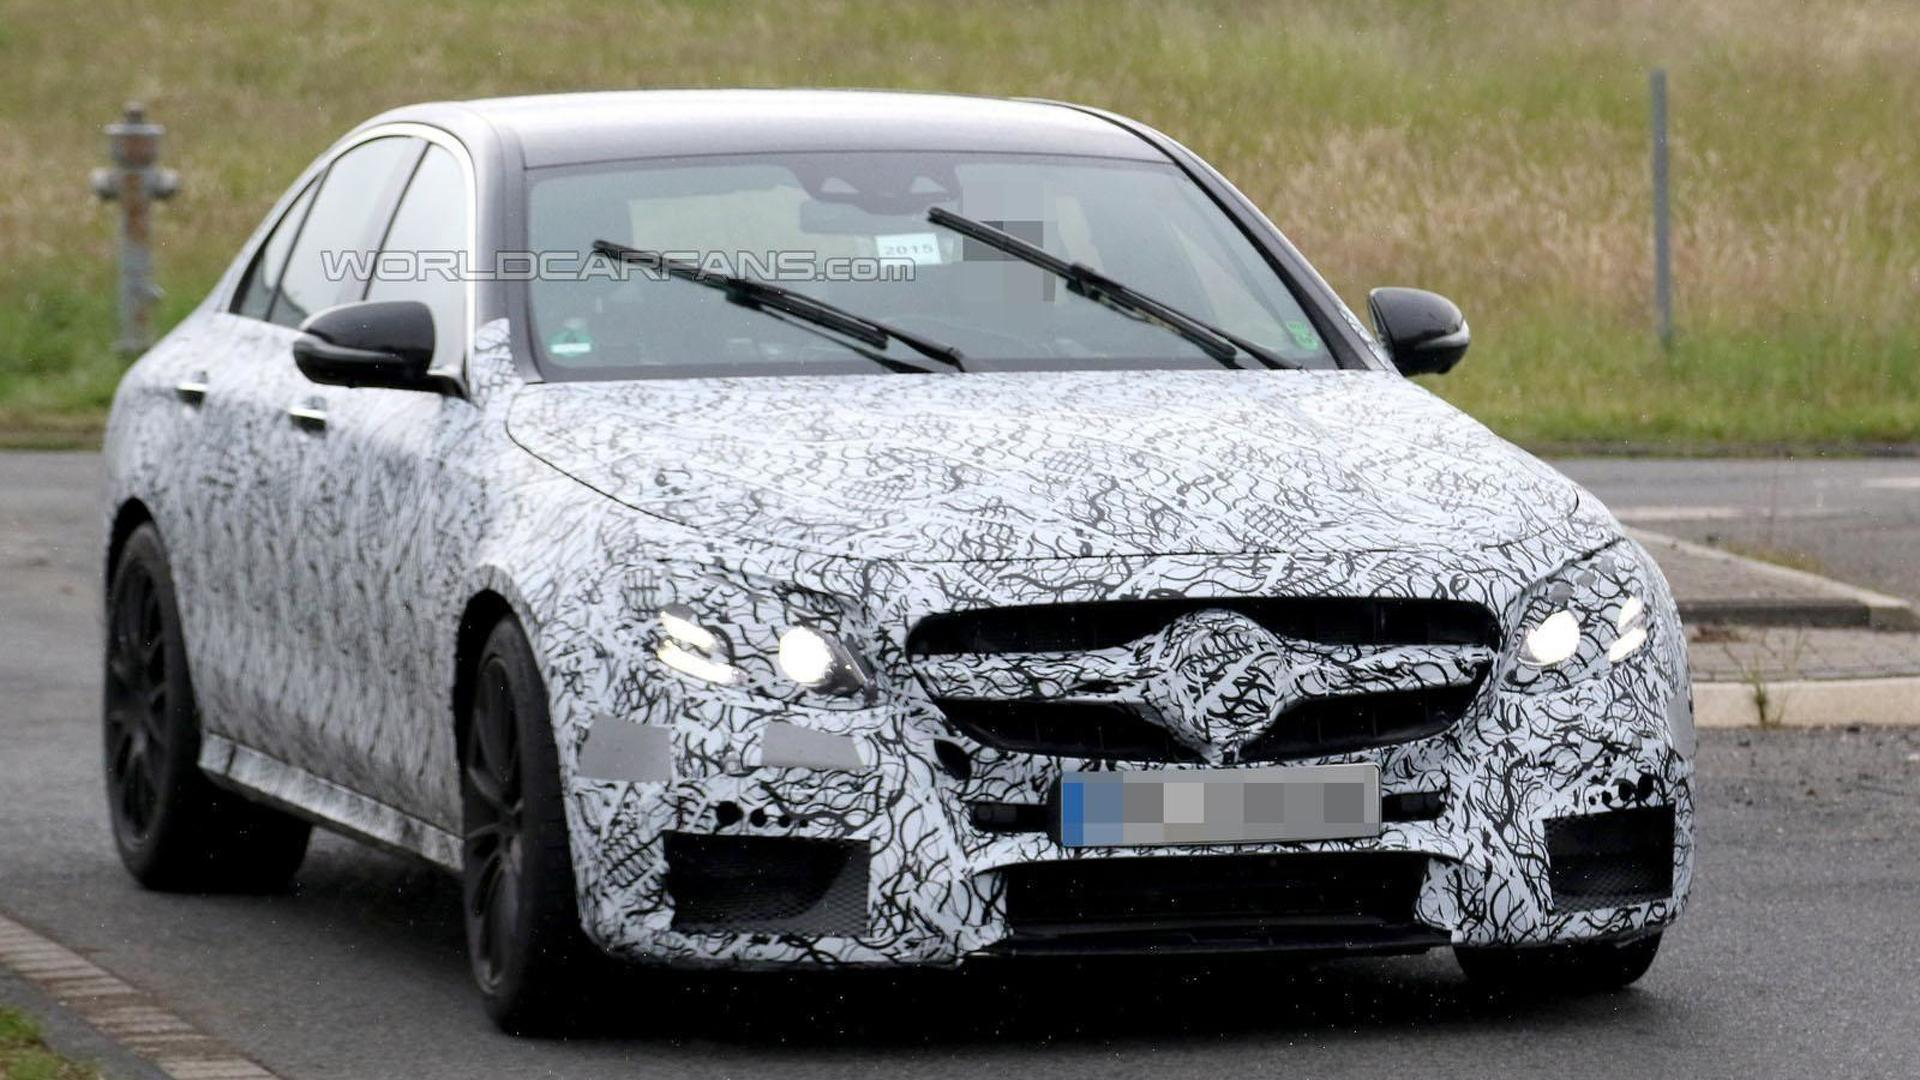 2016 Mercedes E63 AMG spied wearing a production body